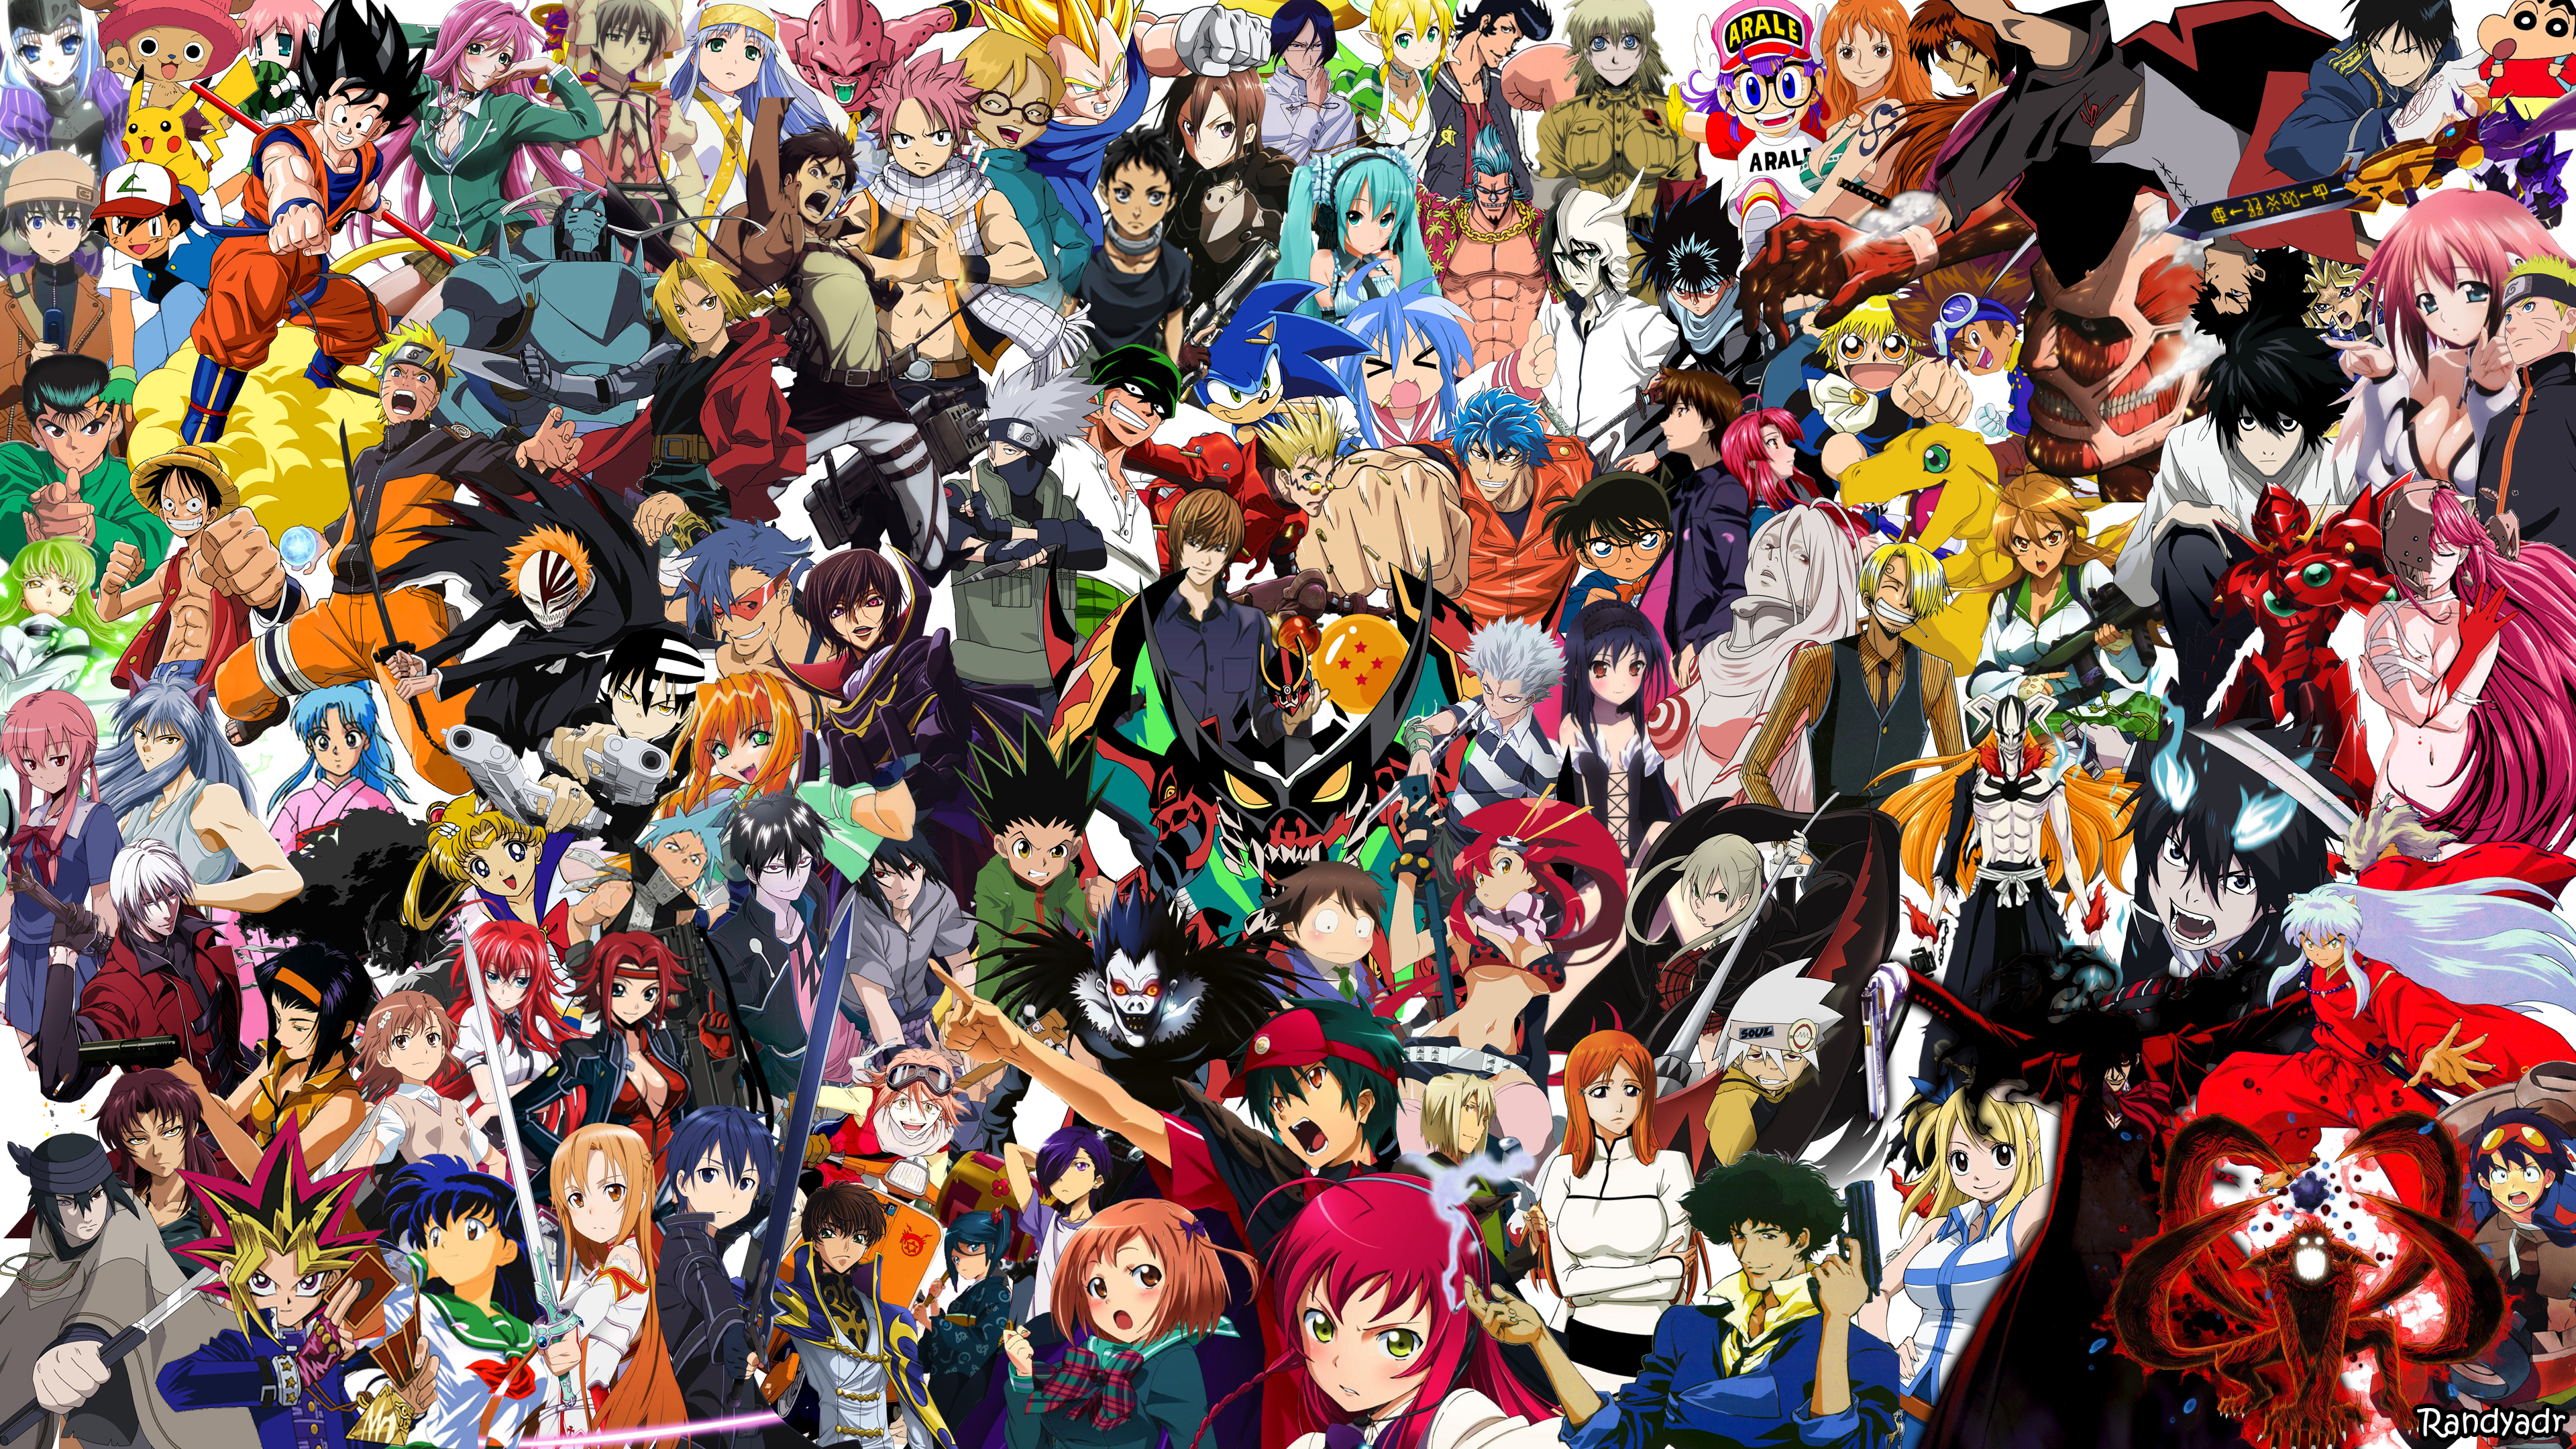 Crossover 4k Ultra HD Wallpaper Background Image 3840x2160 3840x2160